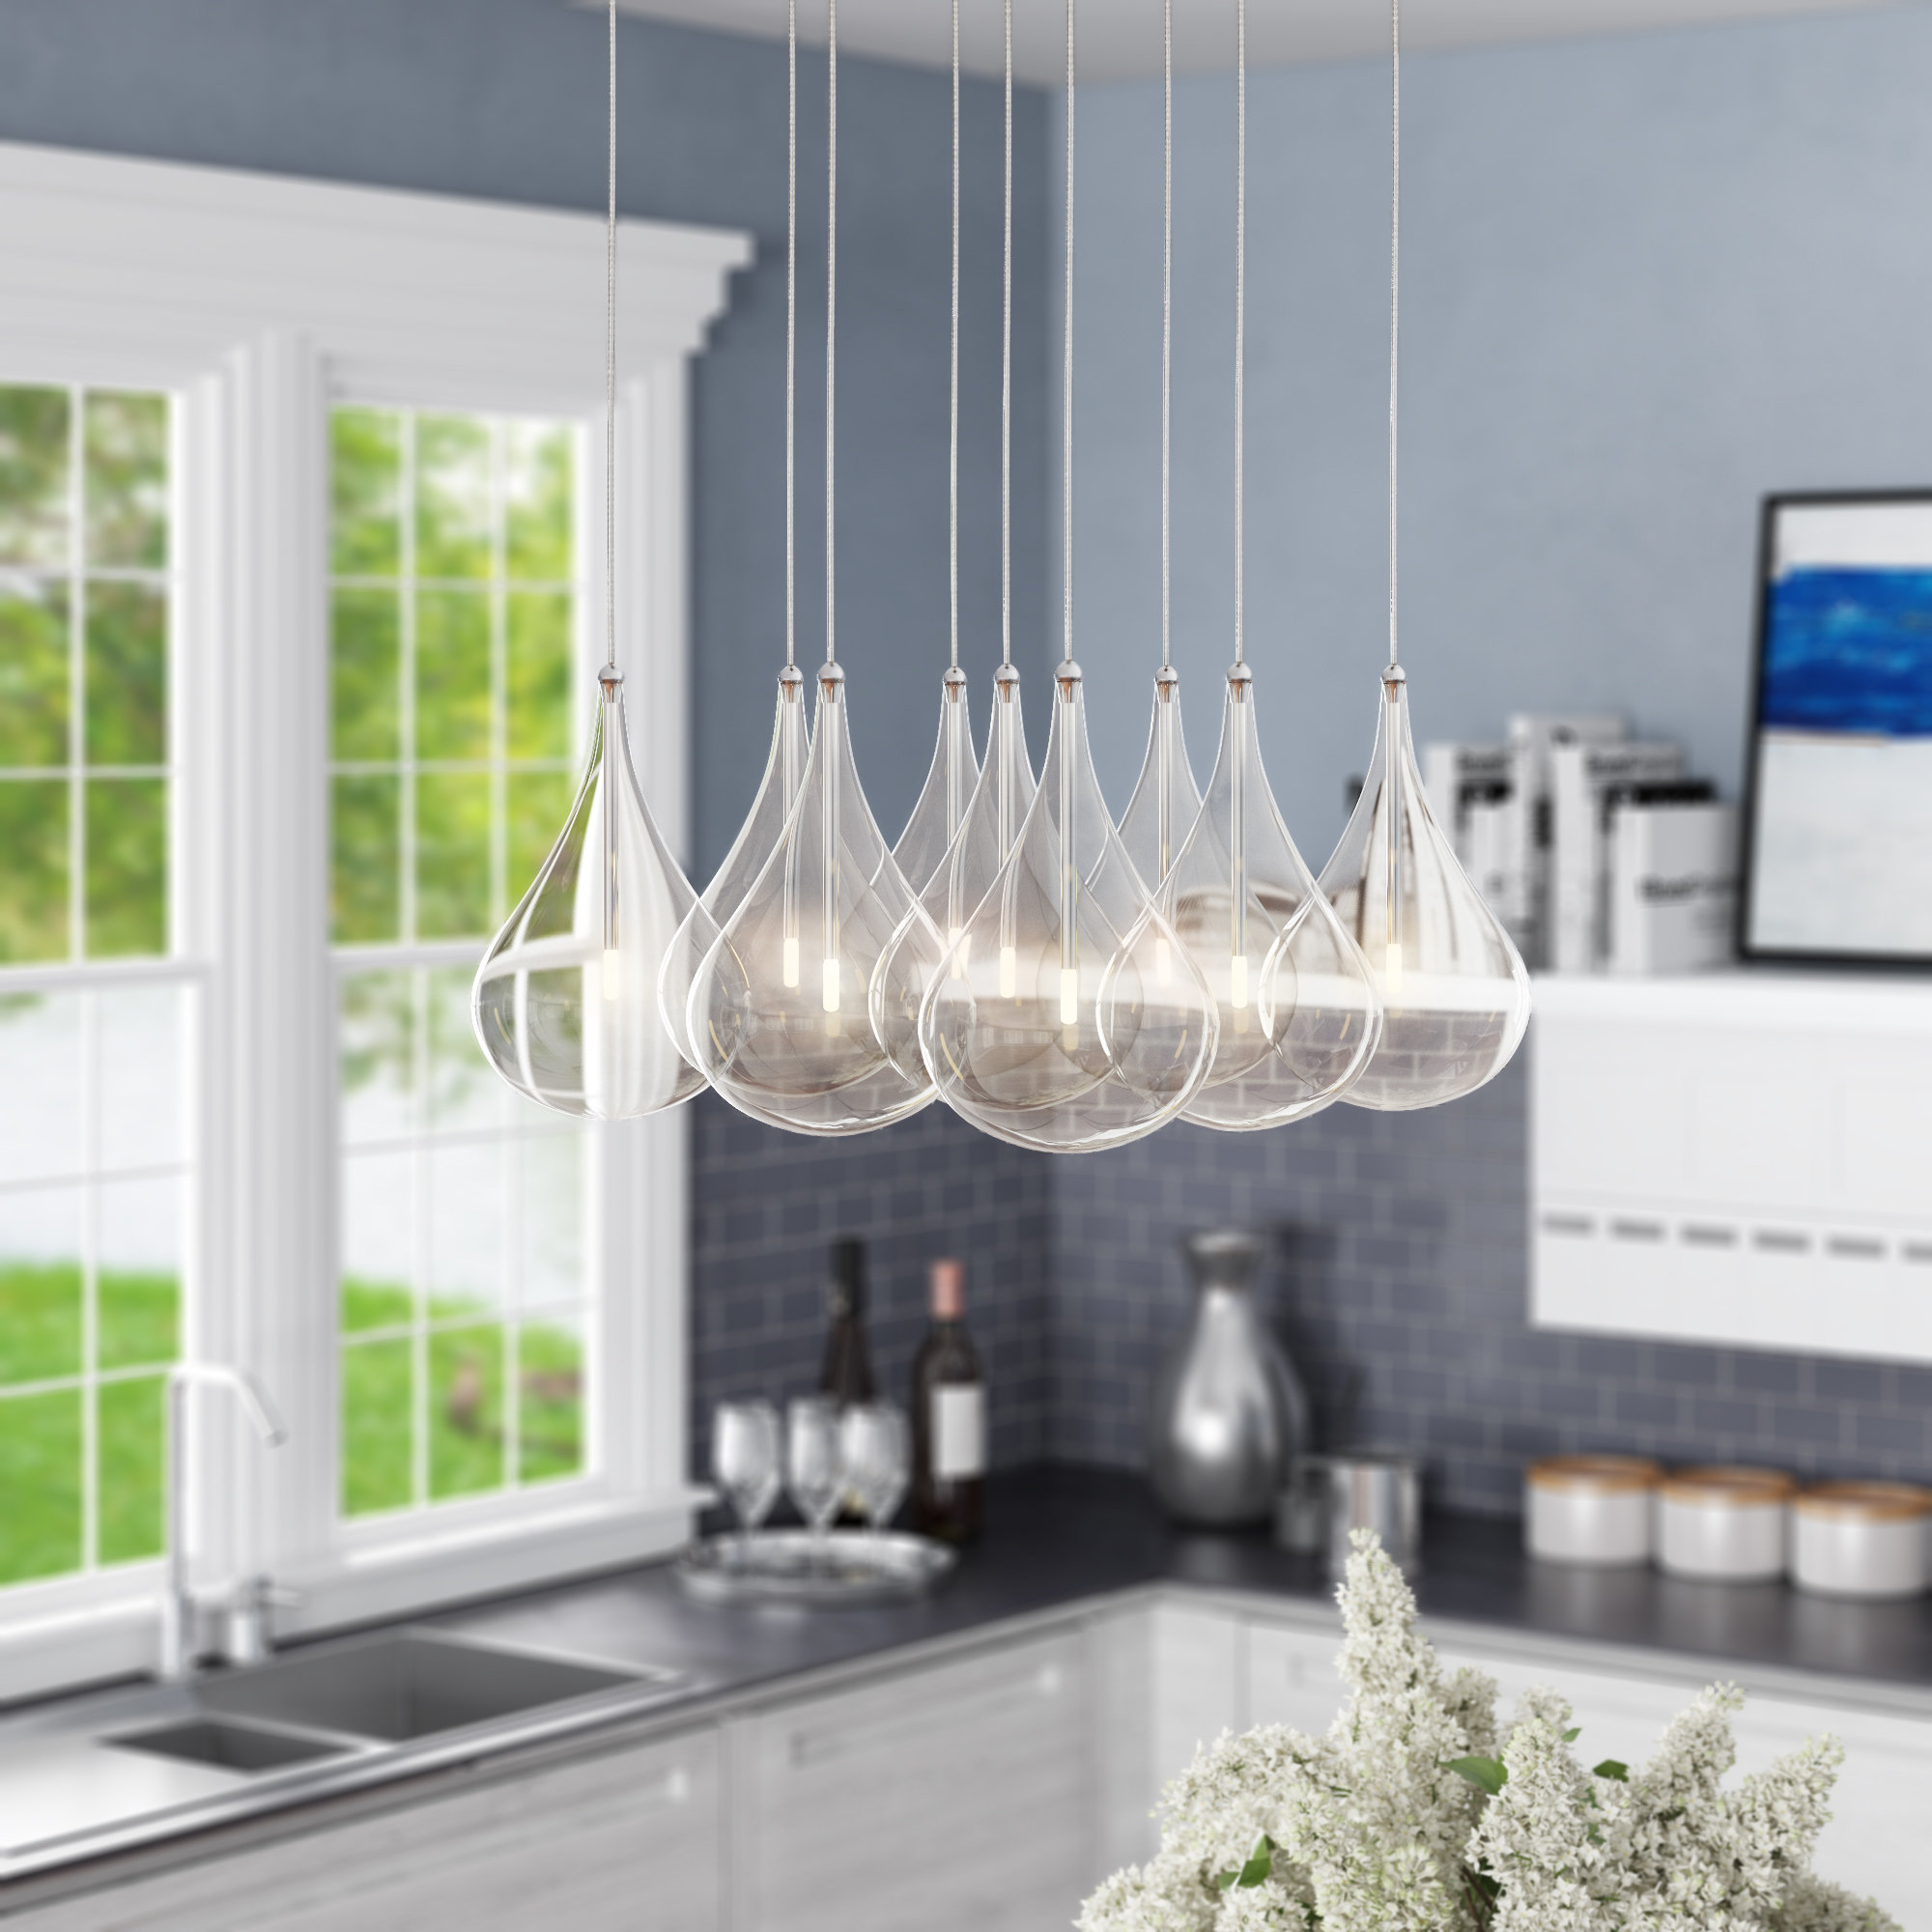 Neal 9 Light Kitchen Island Pendant With Neal 5 Light Kitchen Island Teardrop Pendants (View 5 of 30)